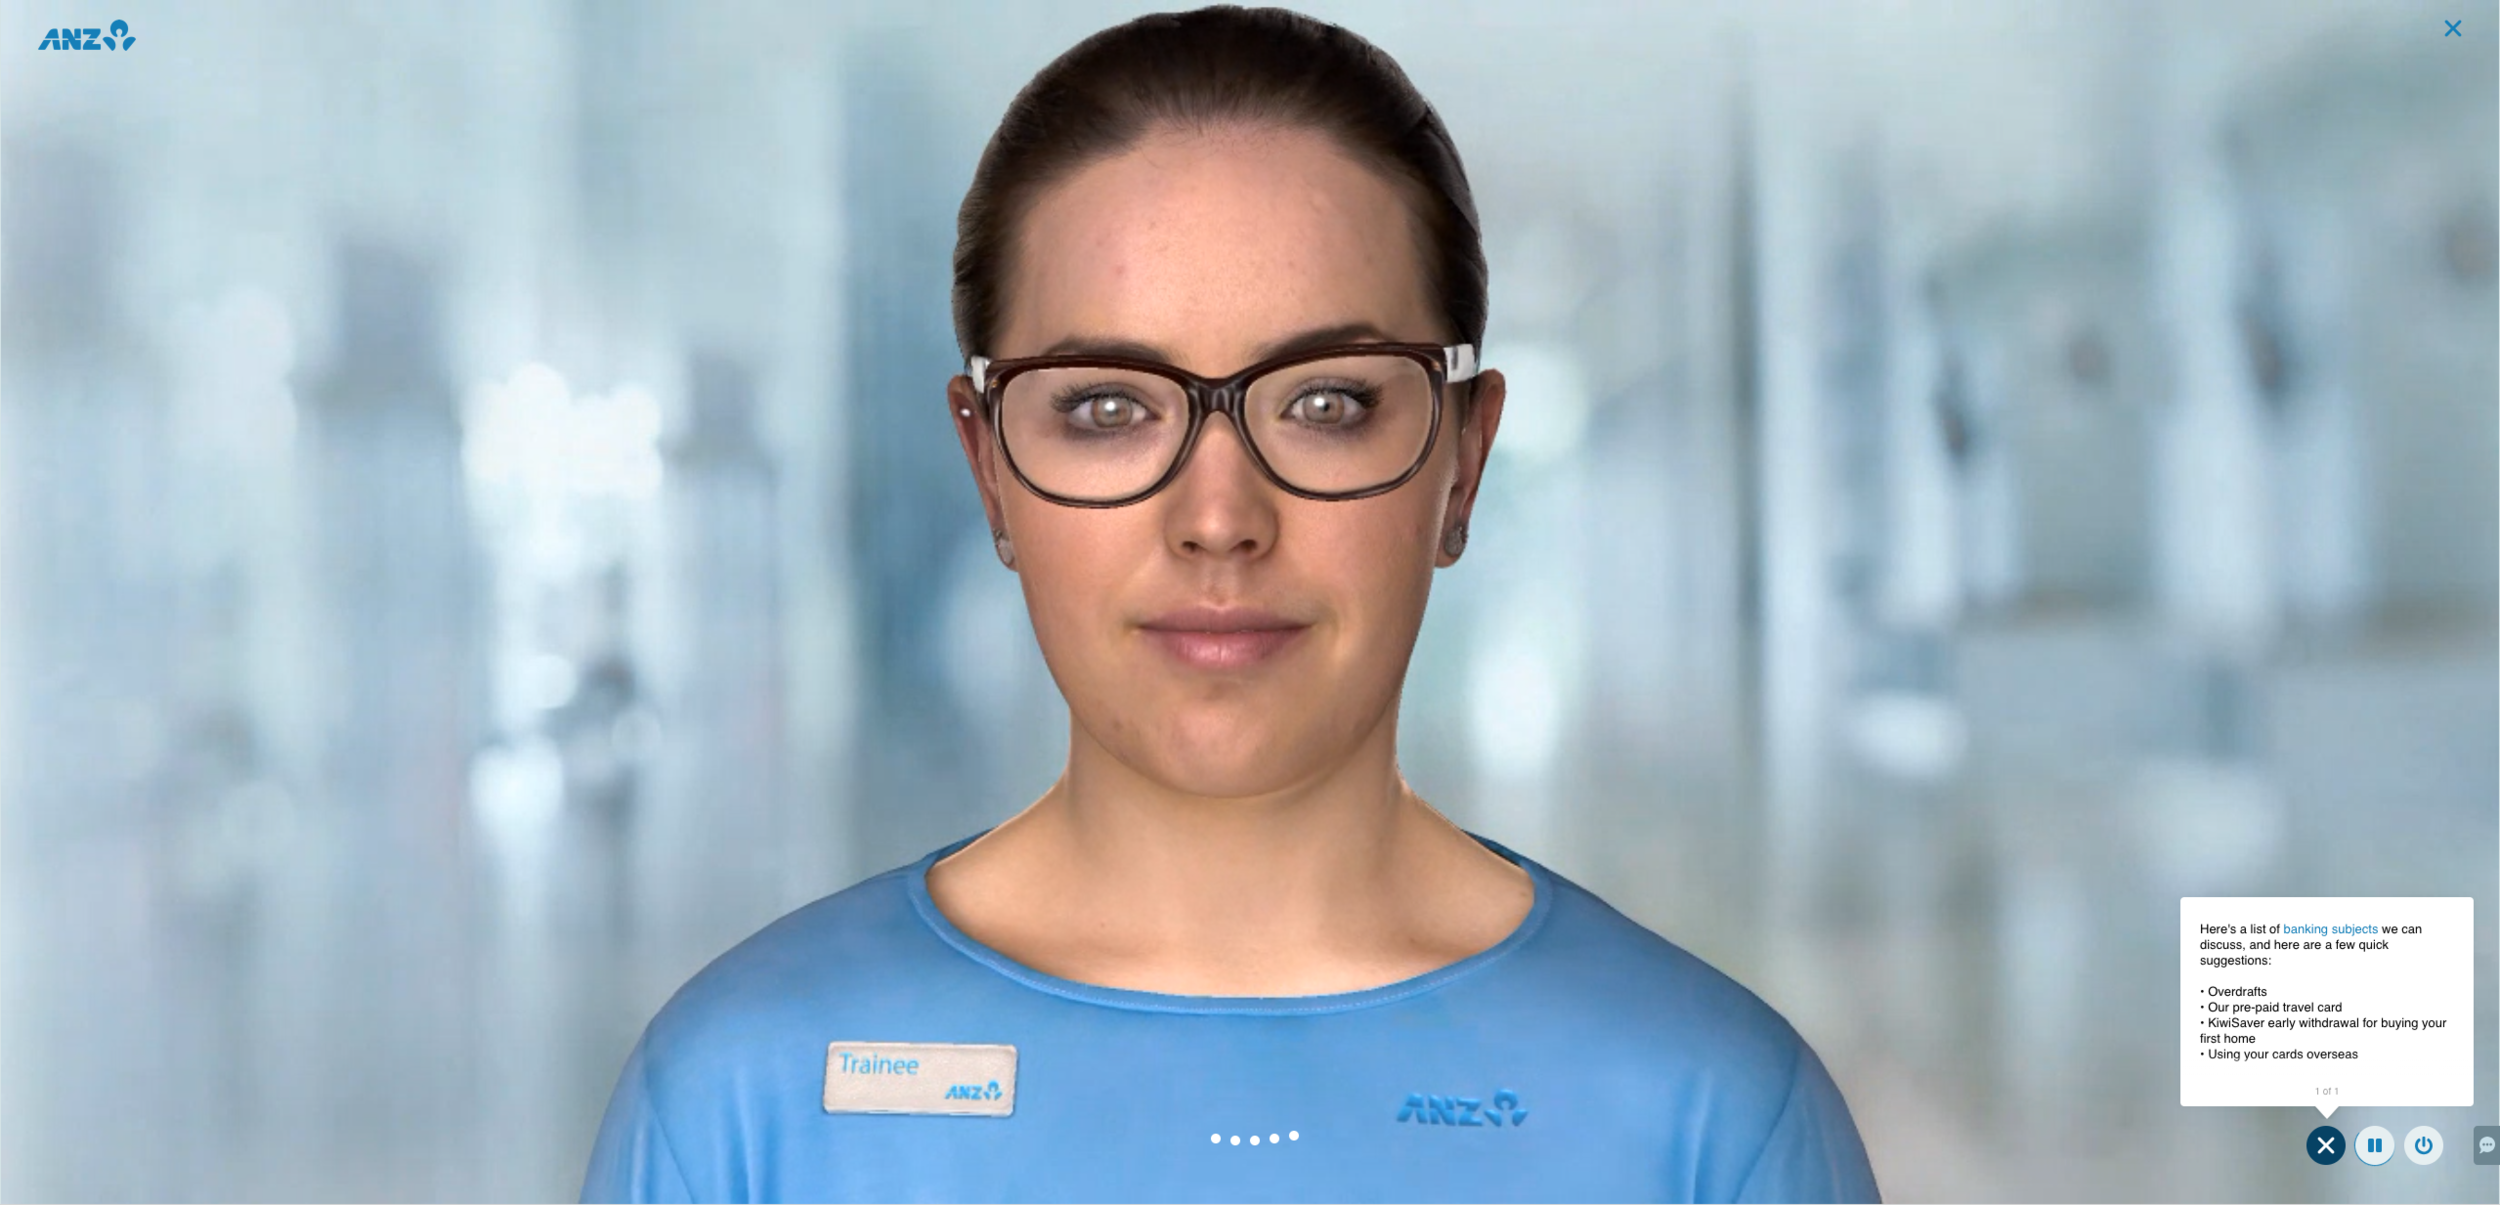 ANZ's Jamie is a live prototype of a digital human that you can test from your browser. Click on the image to give it a try.